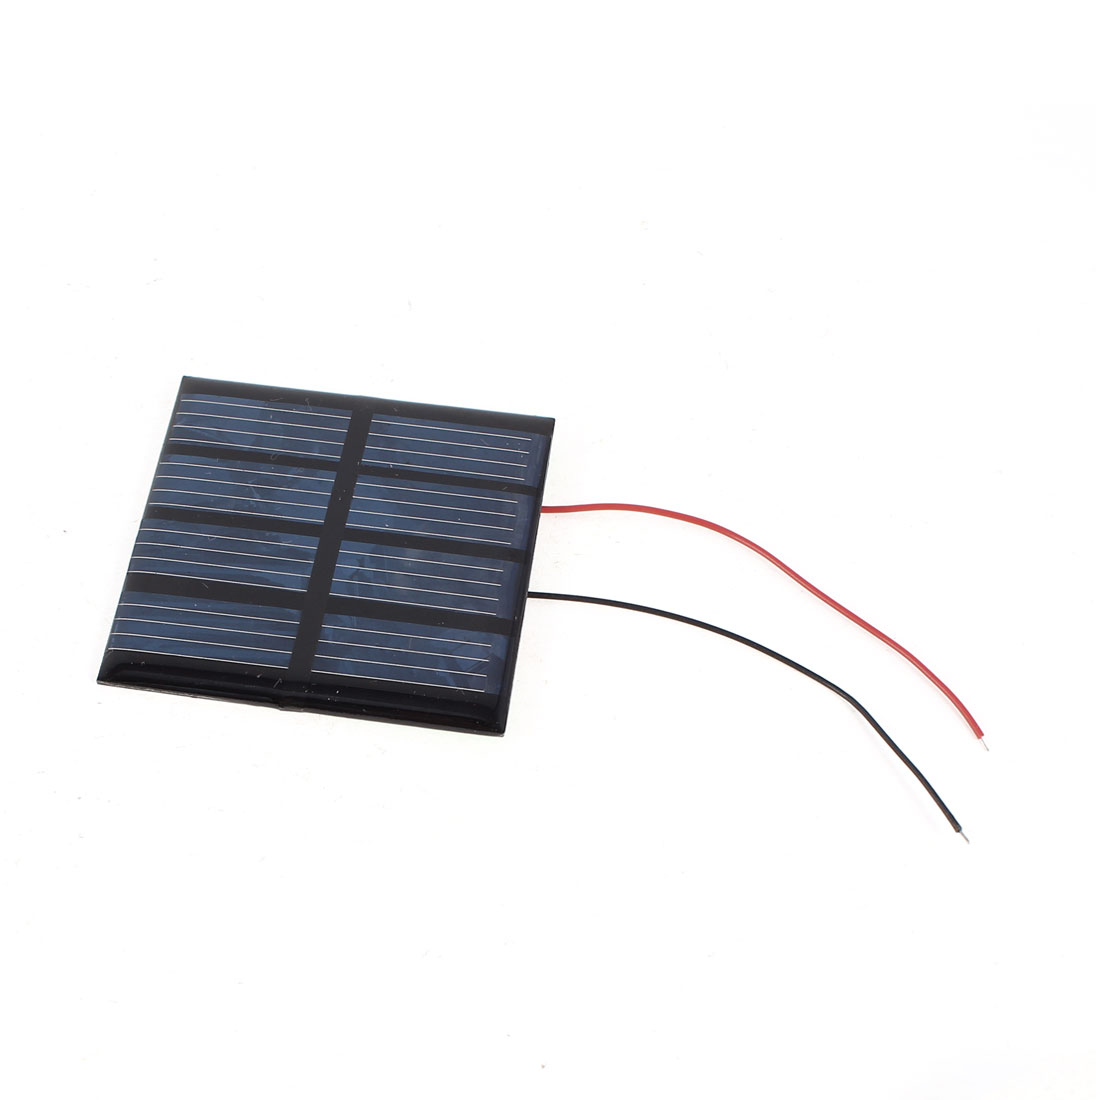 2V 150mA 54mm x 53mm Square Shape Solar Energy Conversion Panel